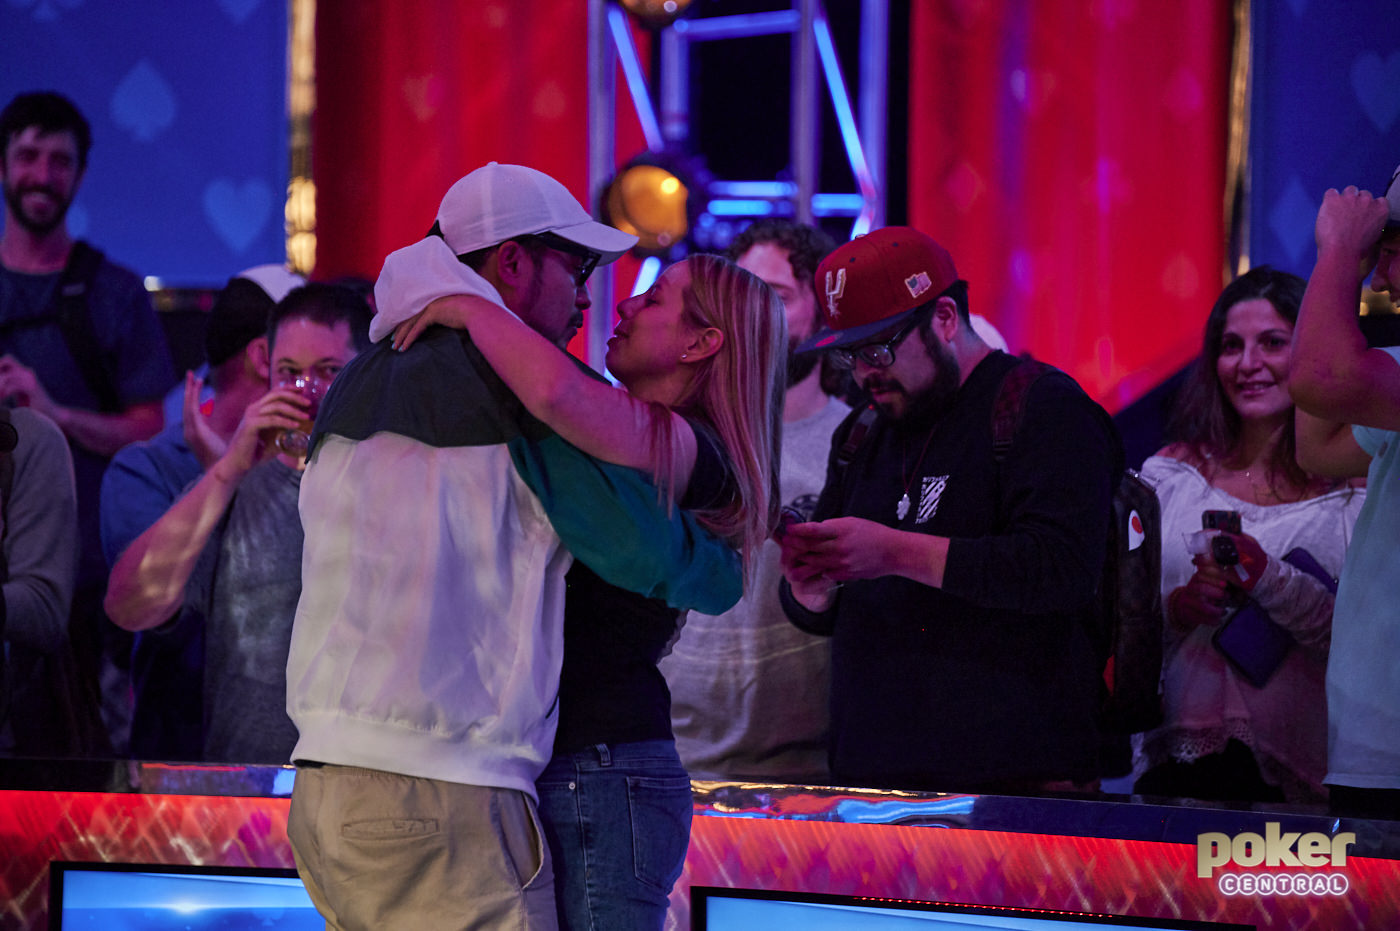 Phil Hui and his long-time girlfriend Loni Harwood share an intimate moment right after the final hand.